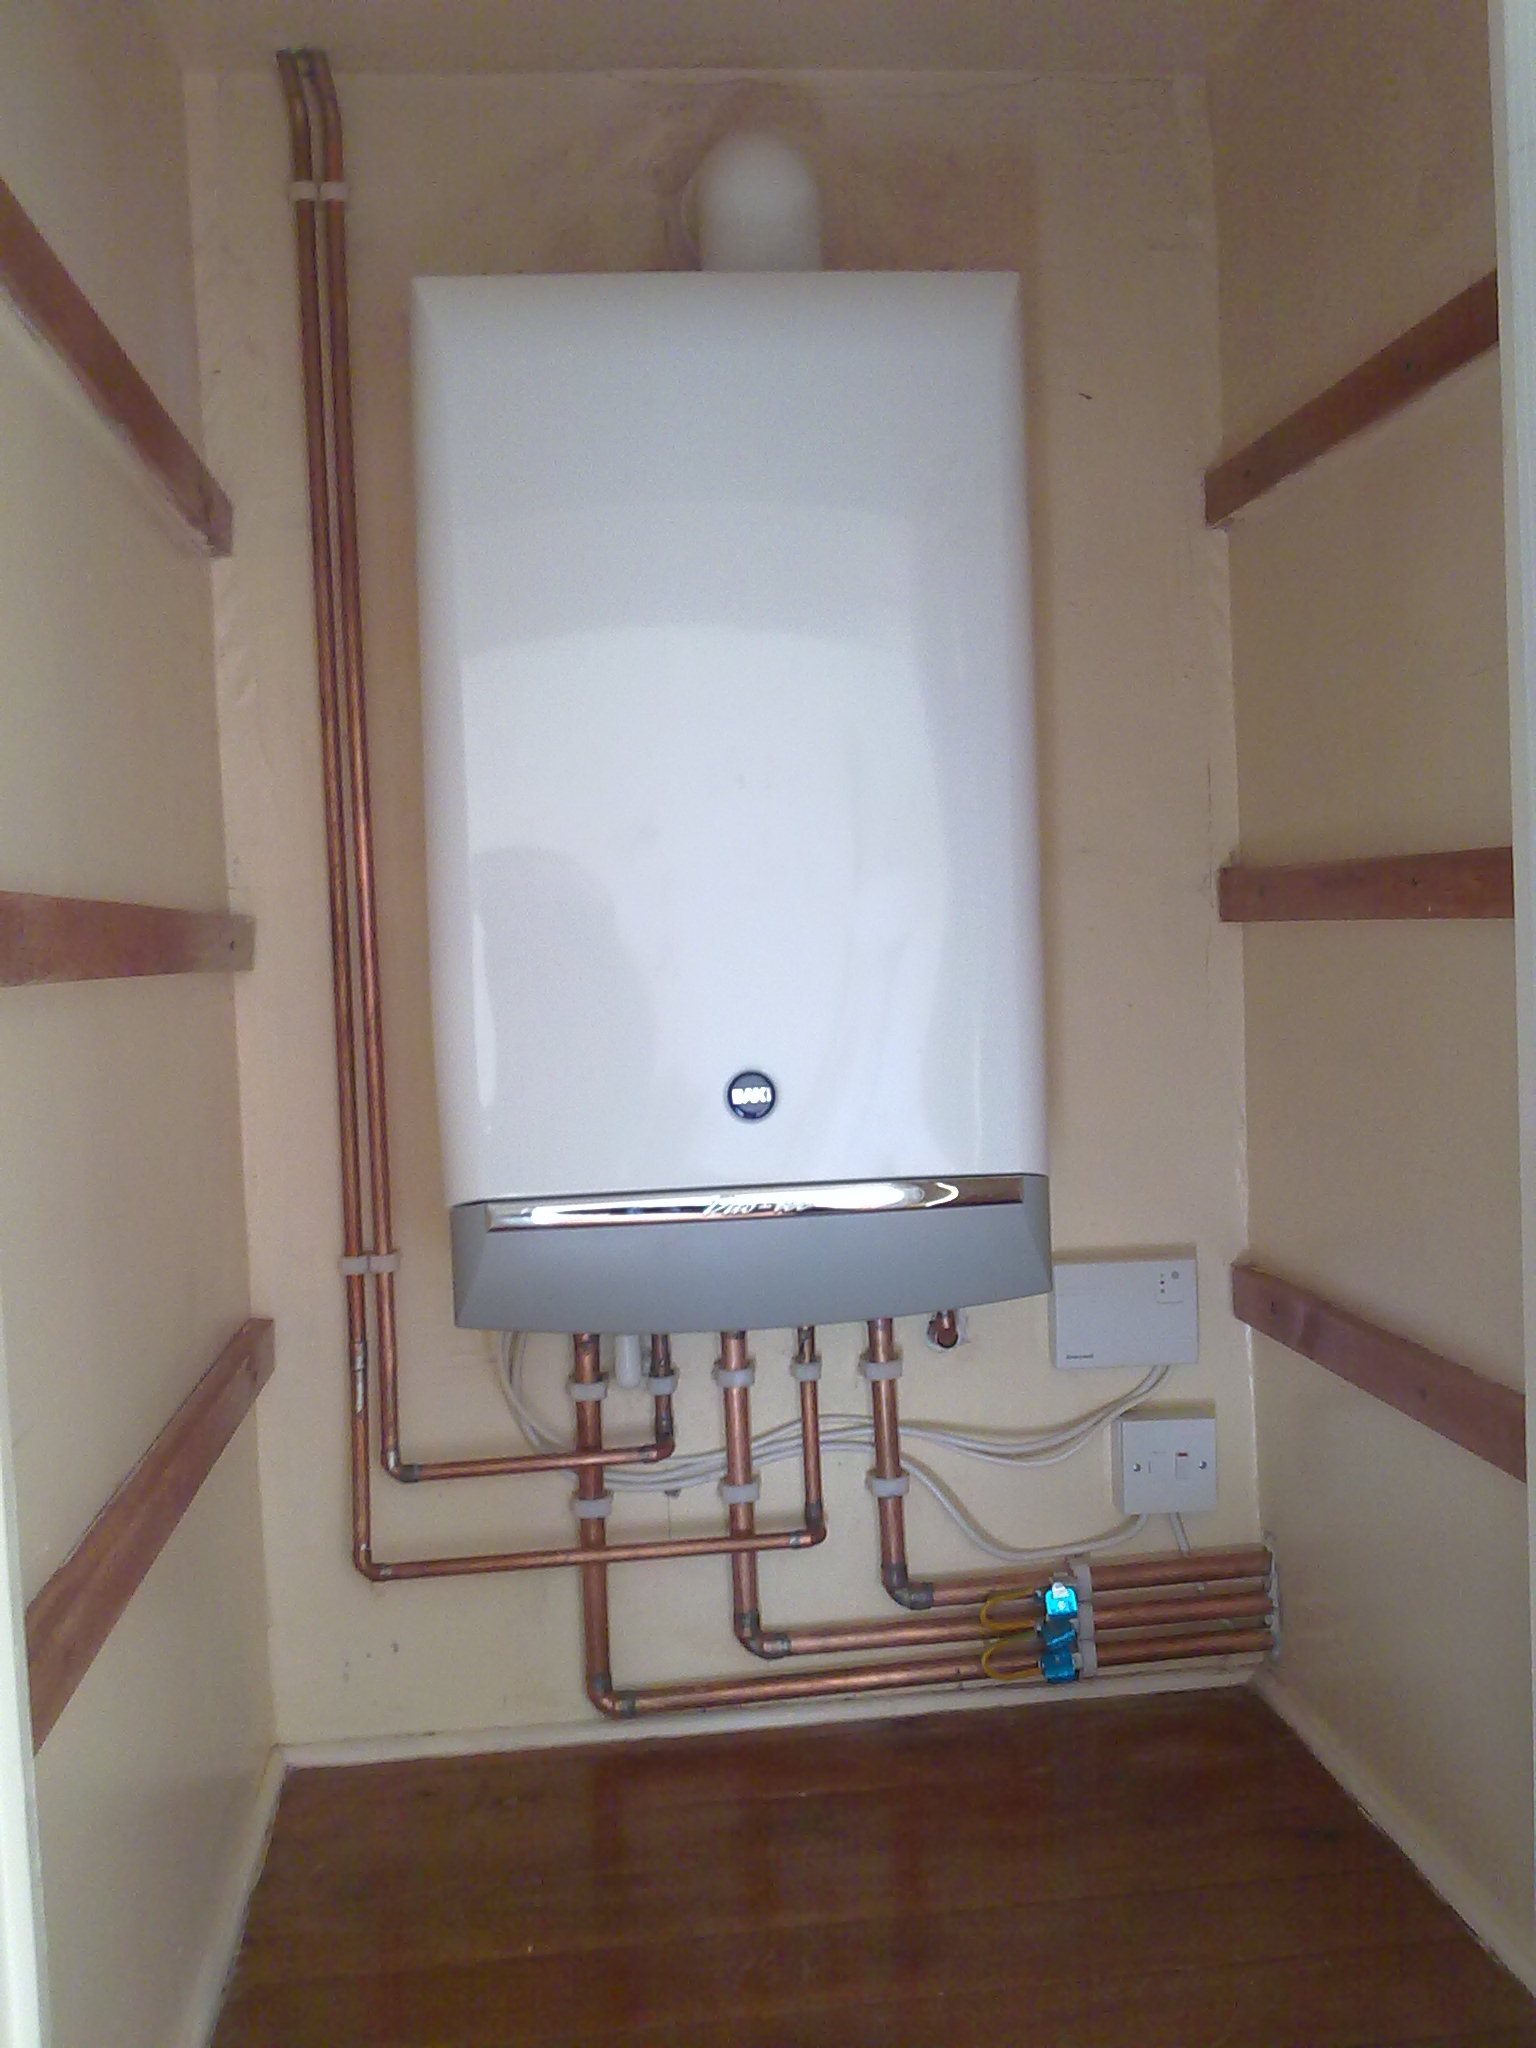 Boiler installations | MSP Installations LTD